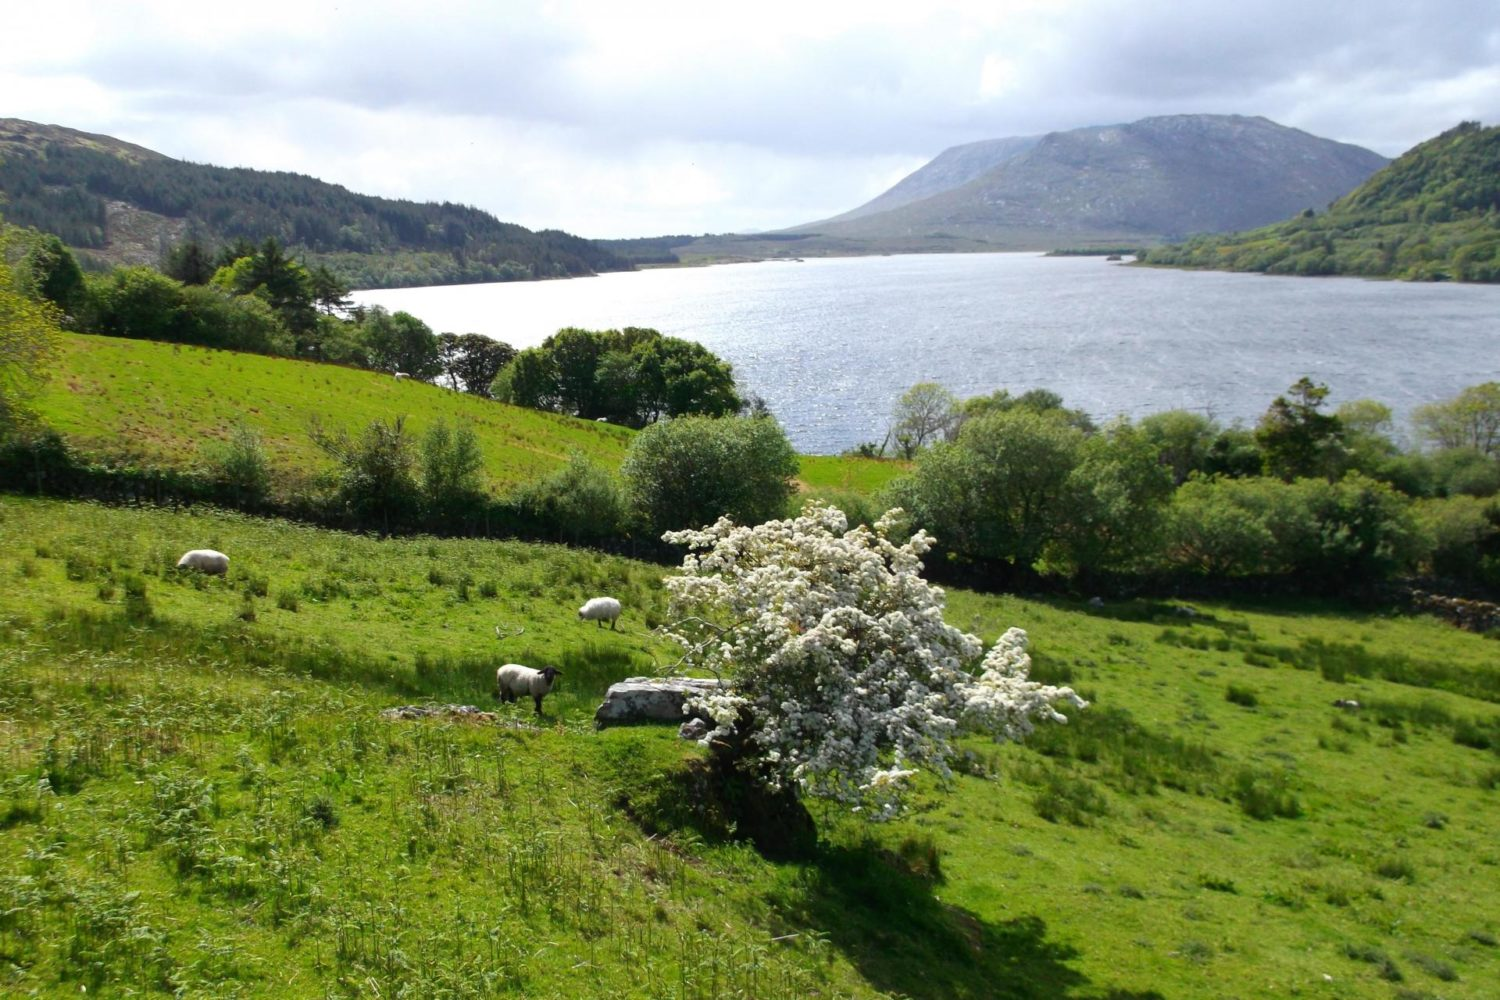 Self-guided walking tour in Ireland - Hiking The Western Way